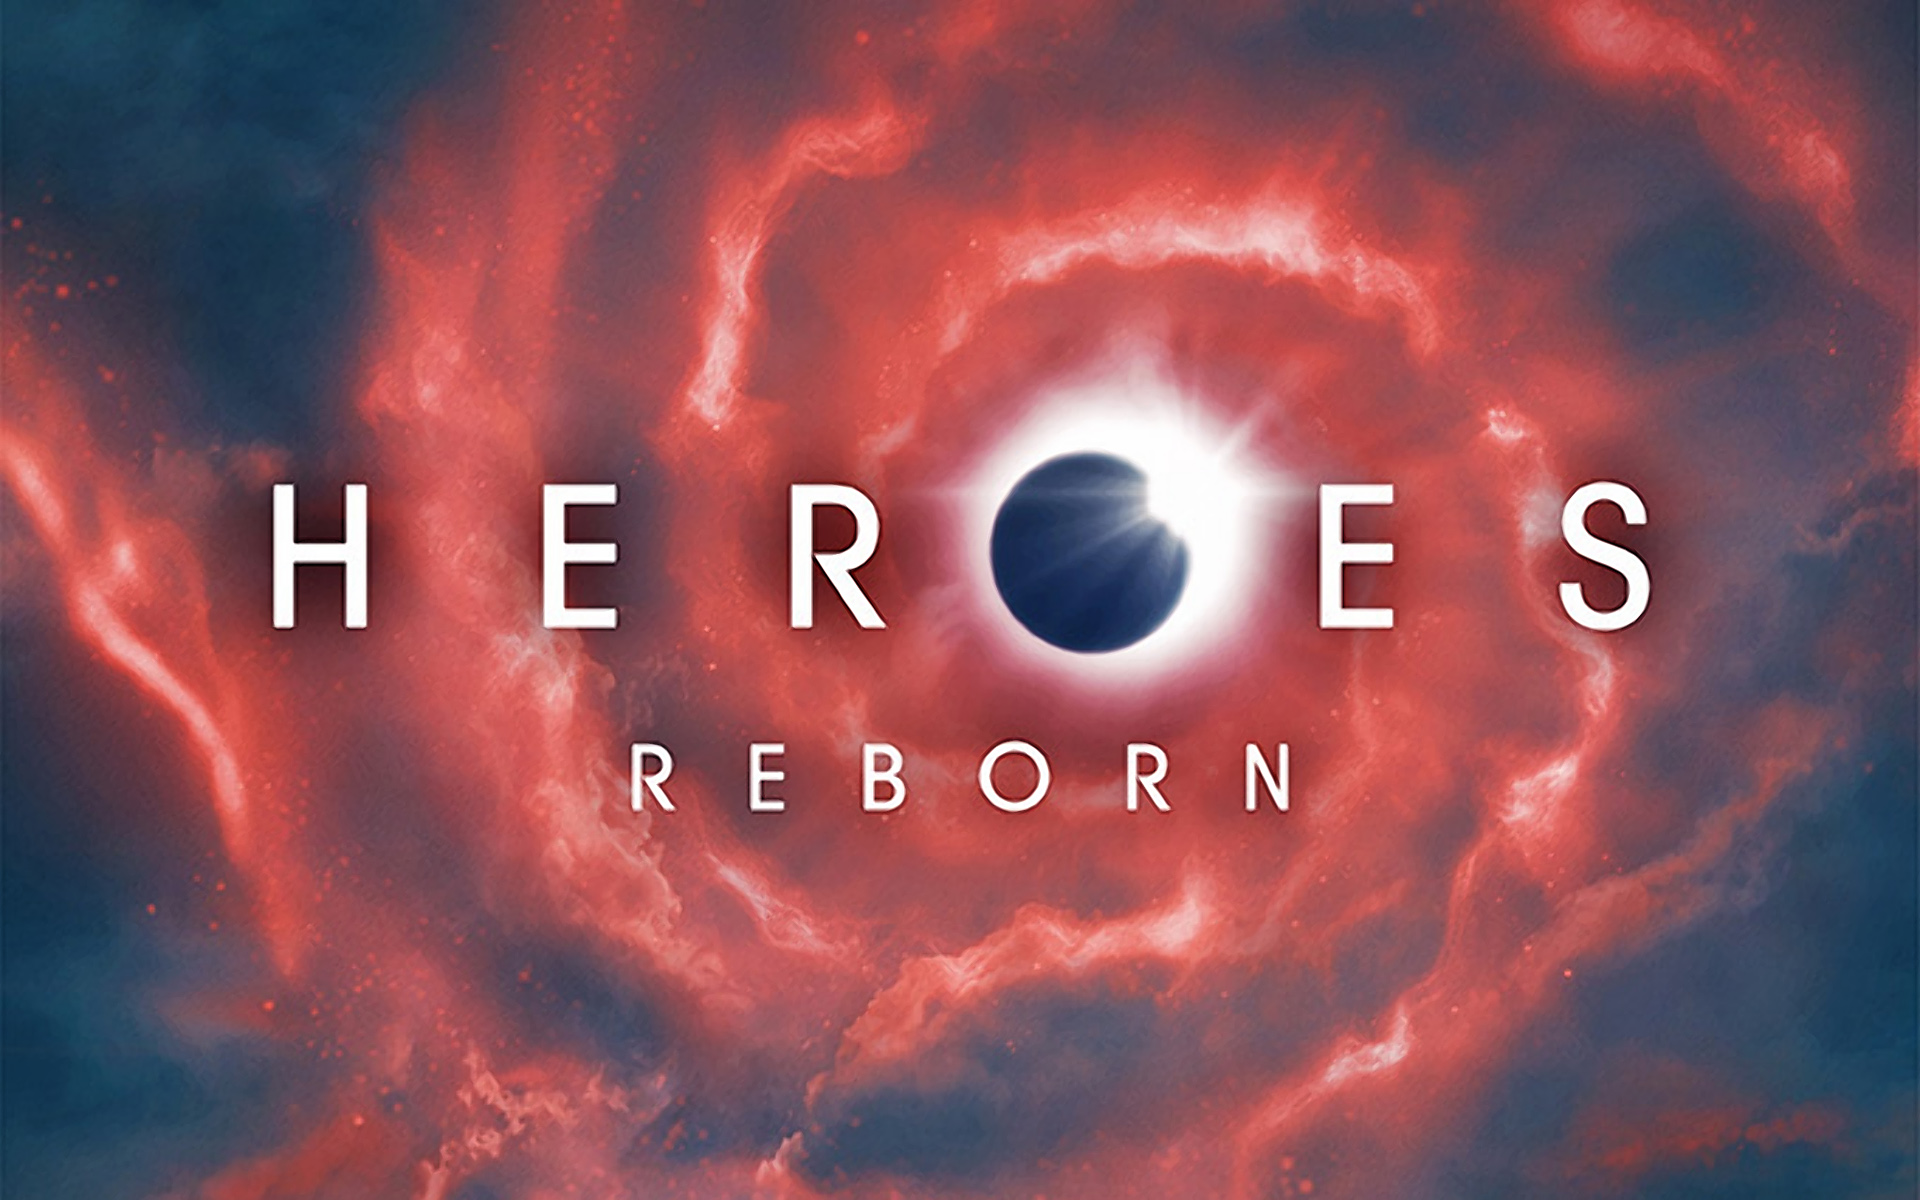 Heroes Reborn 2015 TV Series Poster Wallpaper 1920x1200